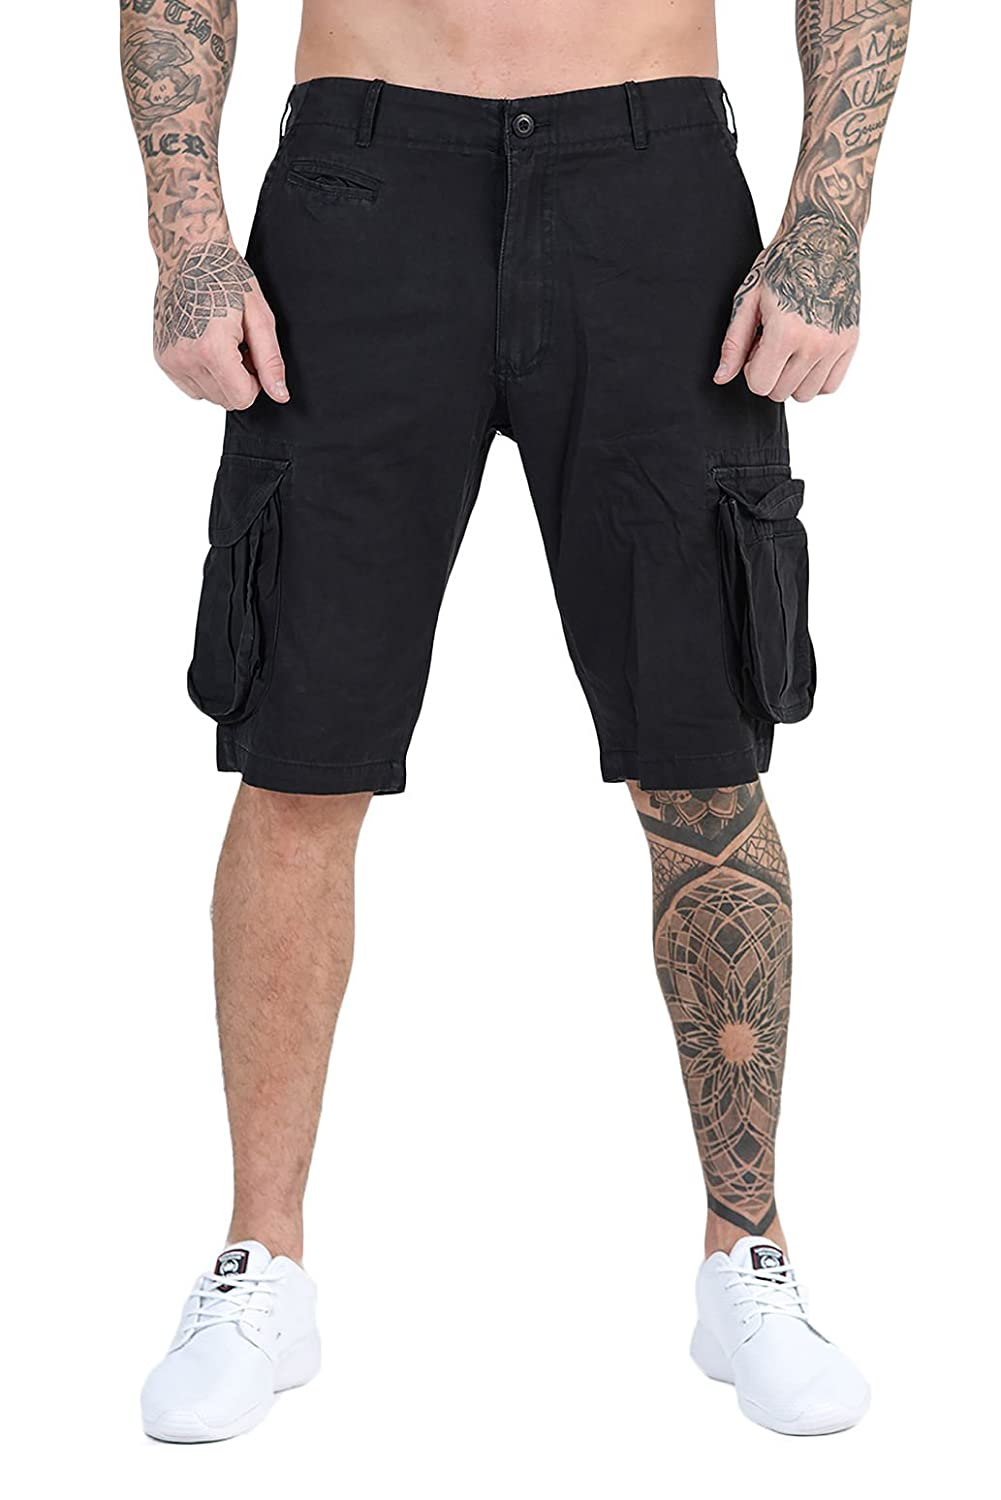 Mens Designer Casual Cargo Shorts Urban State KDX Holiday Cotton Summer  Combat Pants 4 Colours  Amazon.co.uk  Clothing 15a870f8d6b3